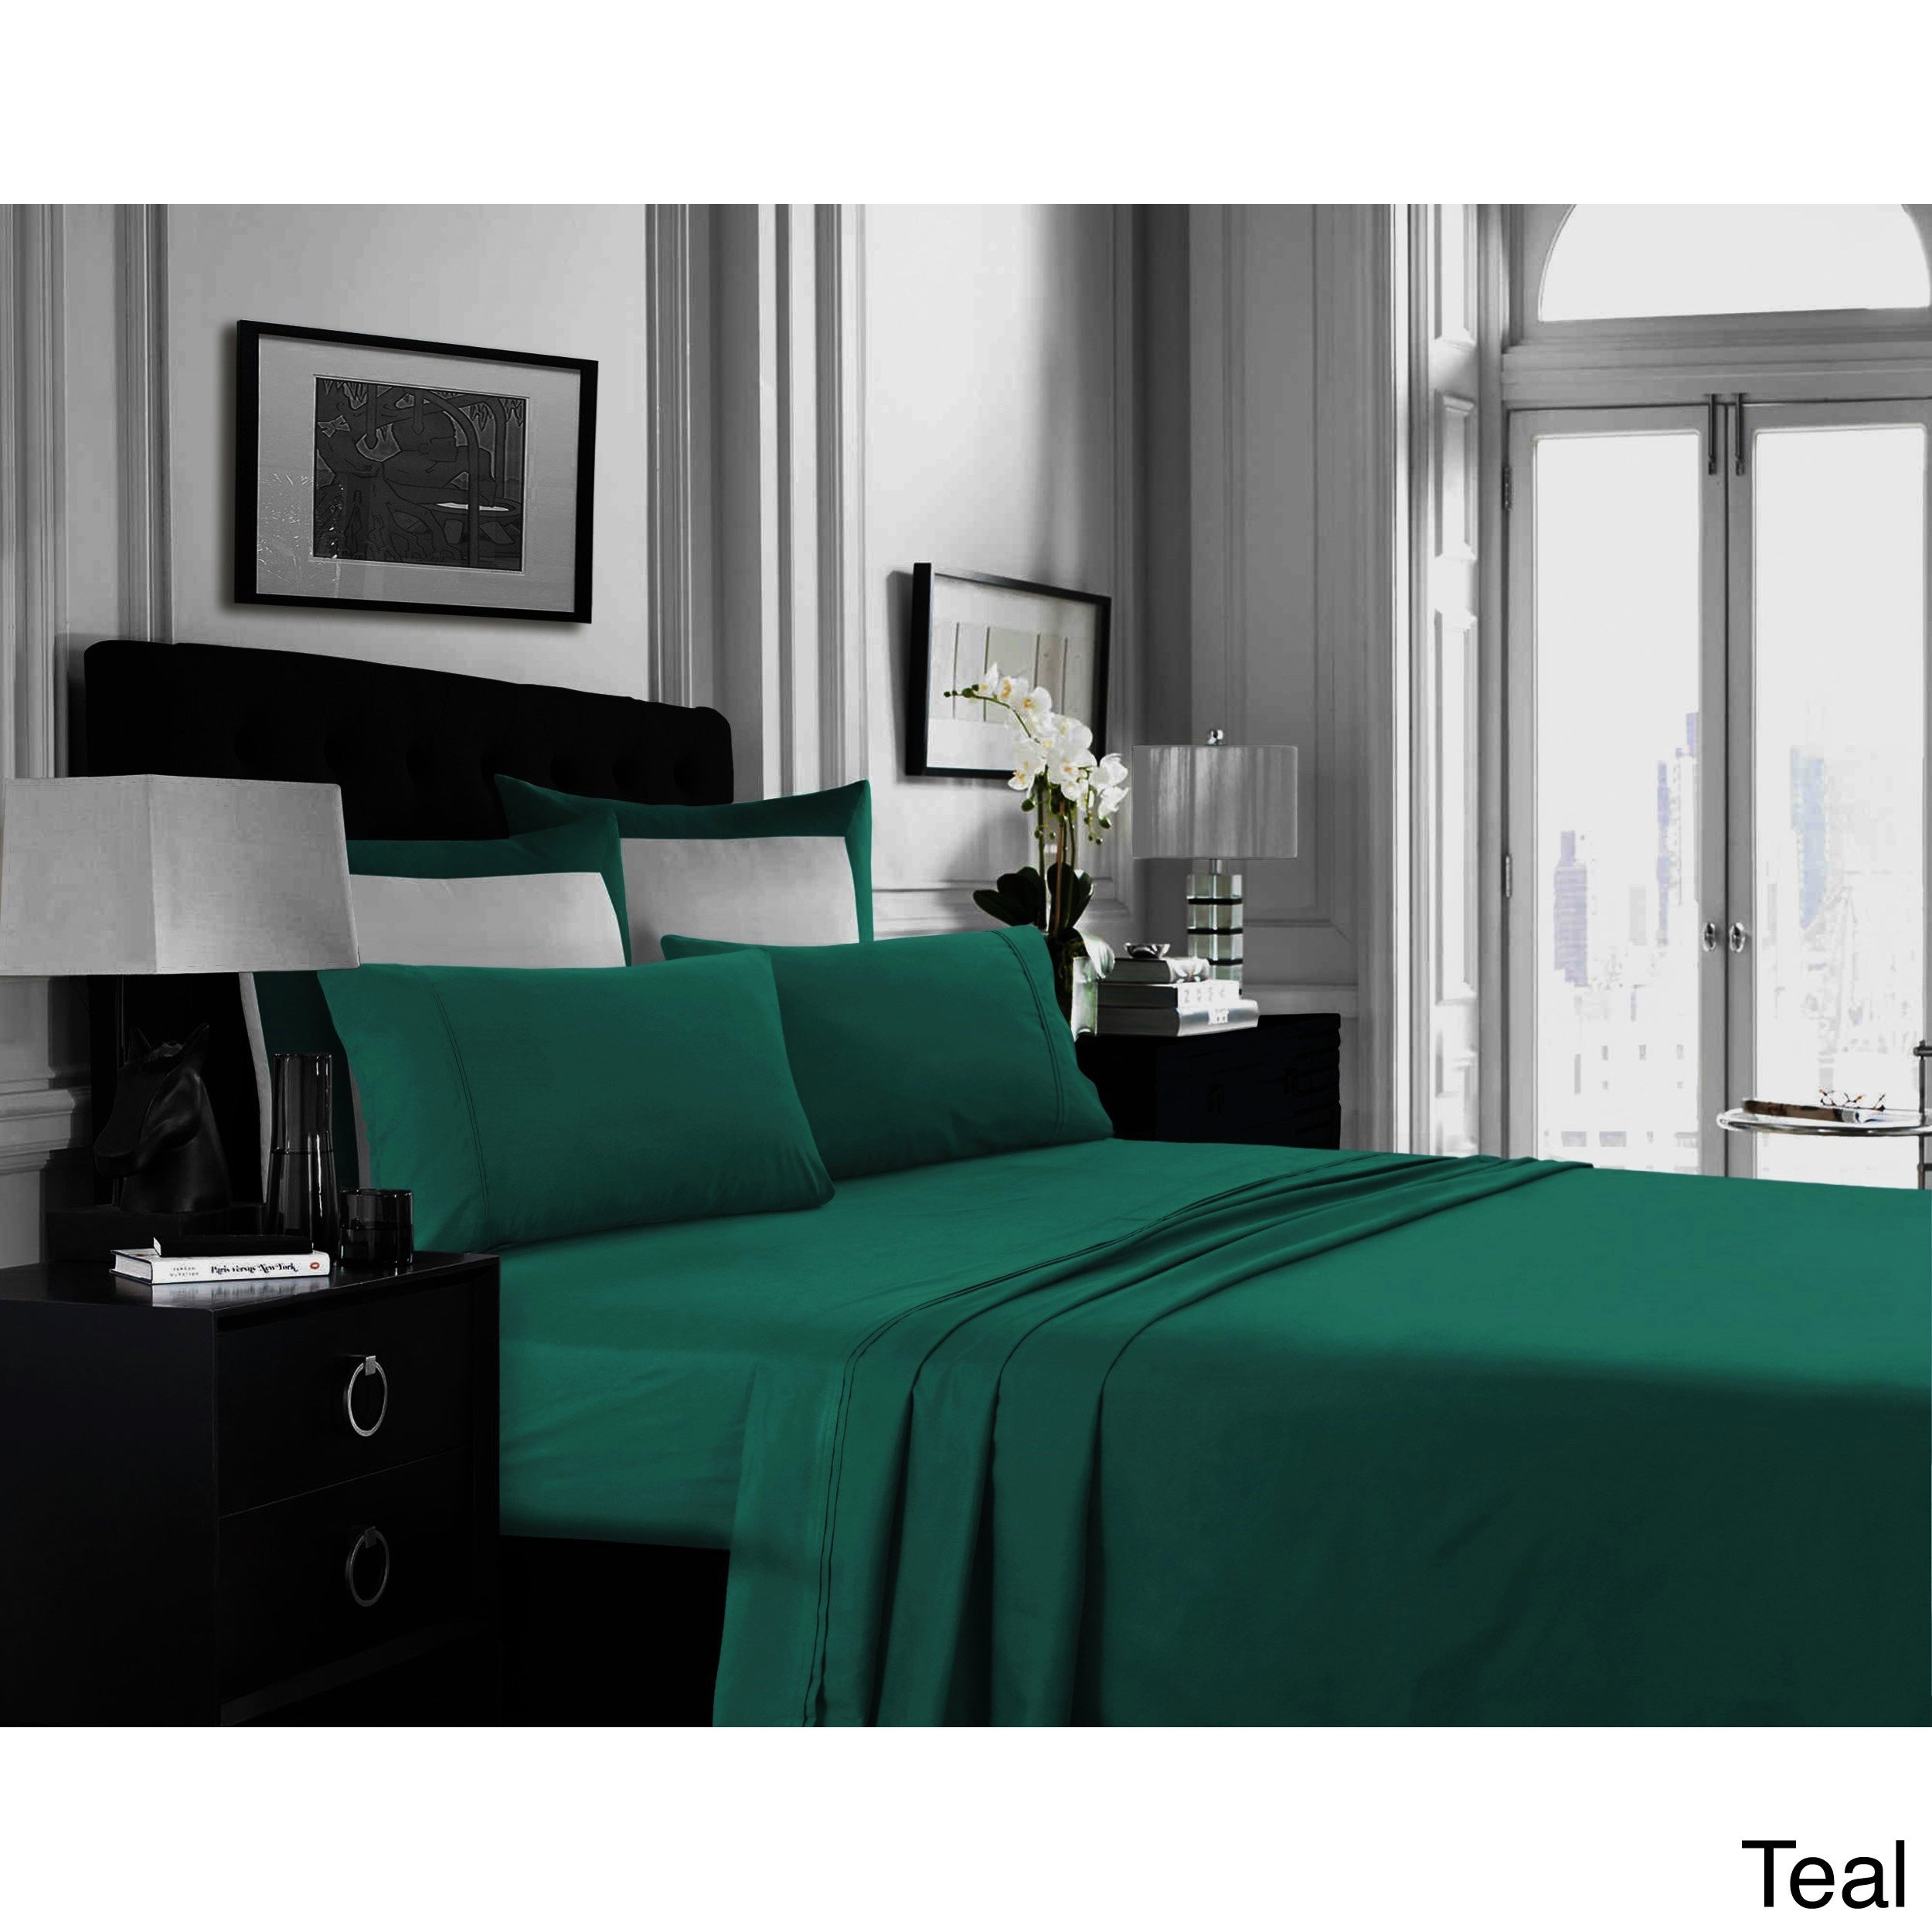 Plain Dyed Full Flat Sheet Bed Sheets Soft Poly Cotton Non-Iron SINGLE BED only